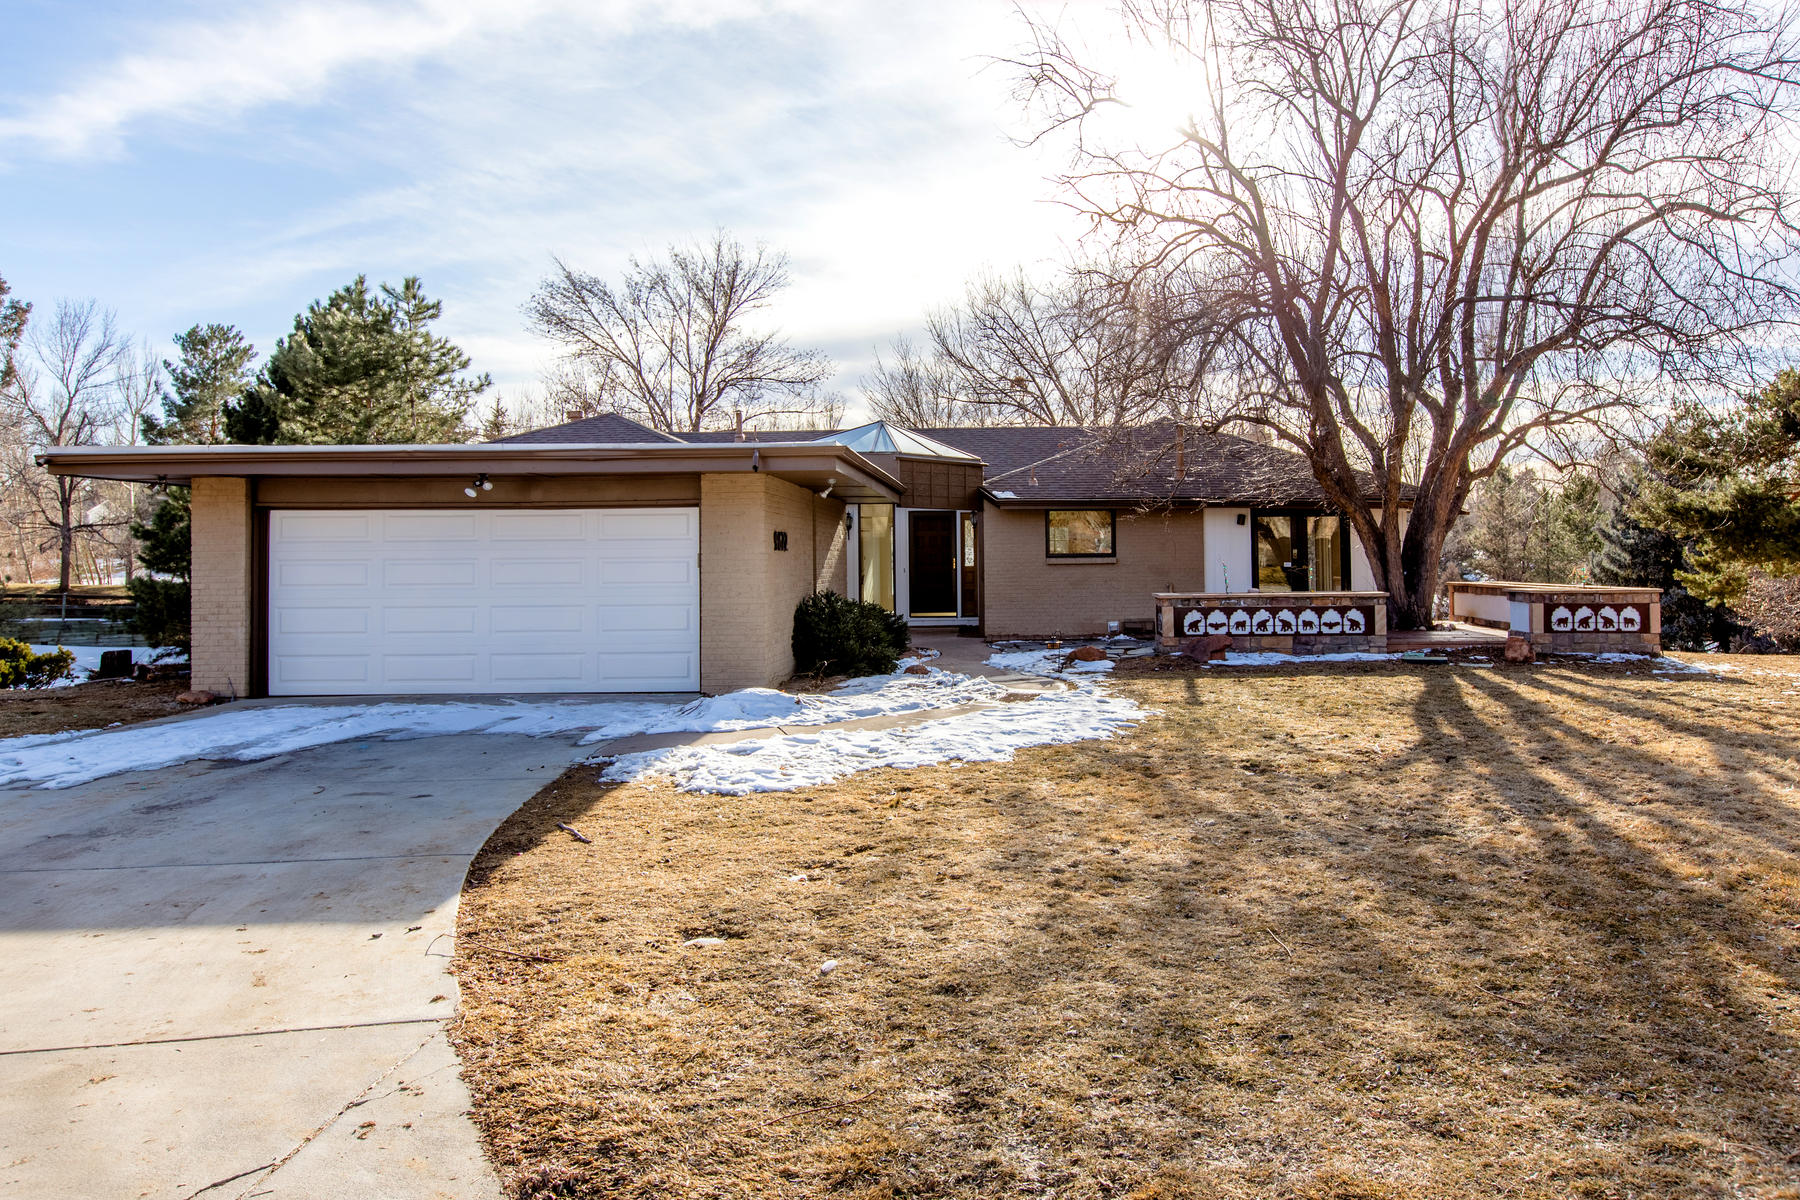 Single Family Homes for Sale at You won't want to miss this great opportunity to own in Orchard Hills 9622 E Orchard Dr Greenwood Village, Colorado 80111 United States